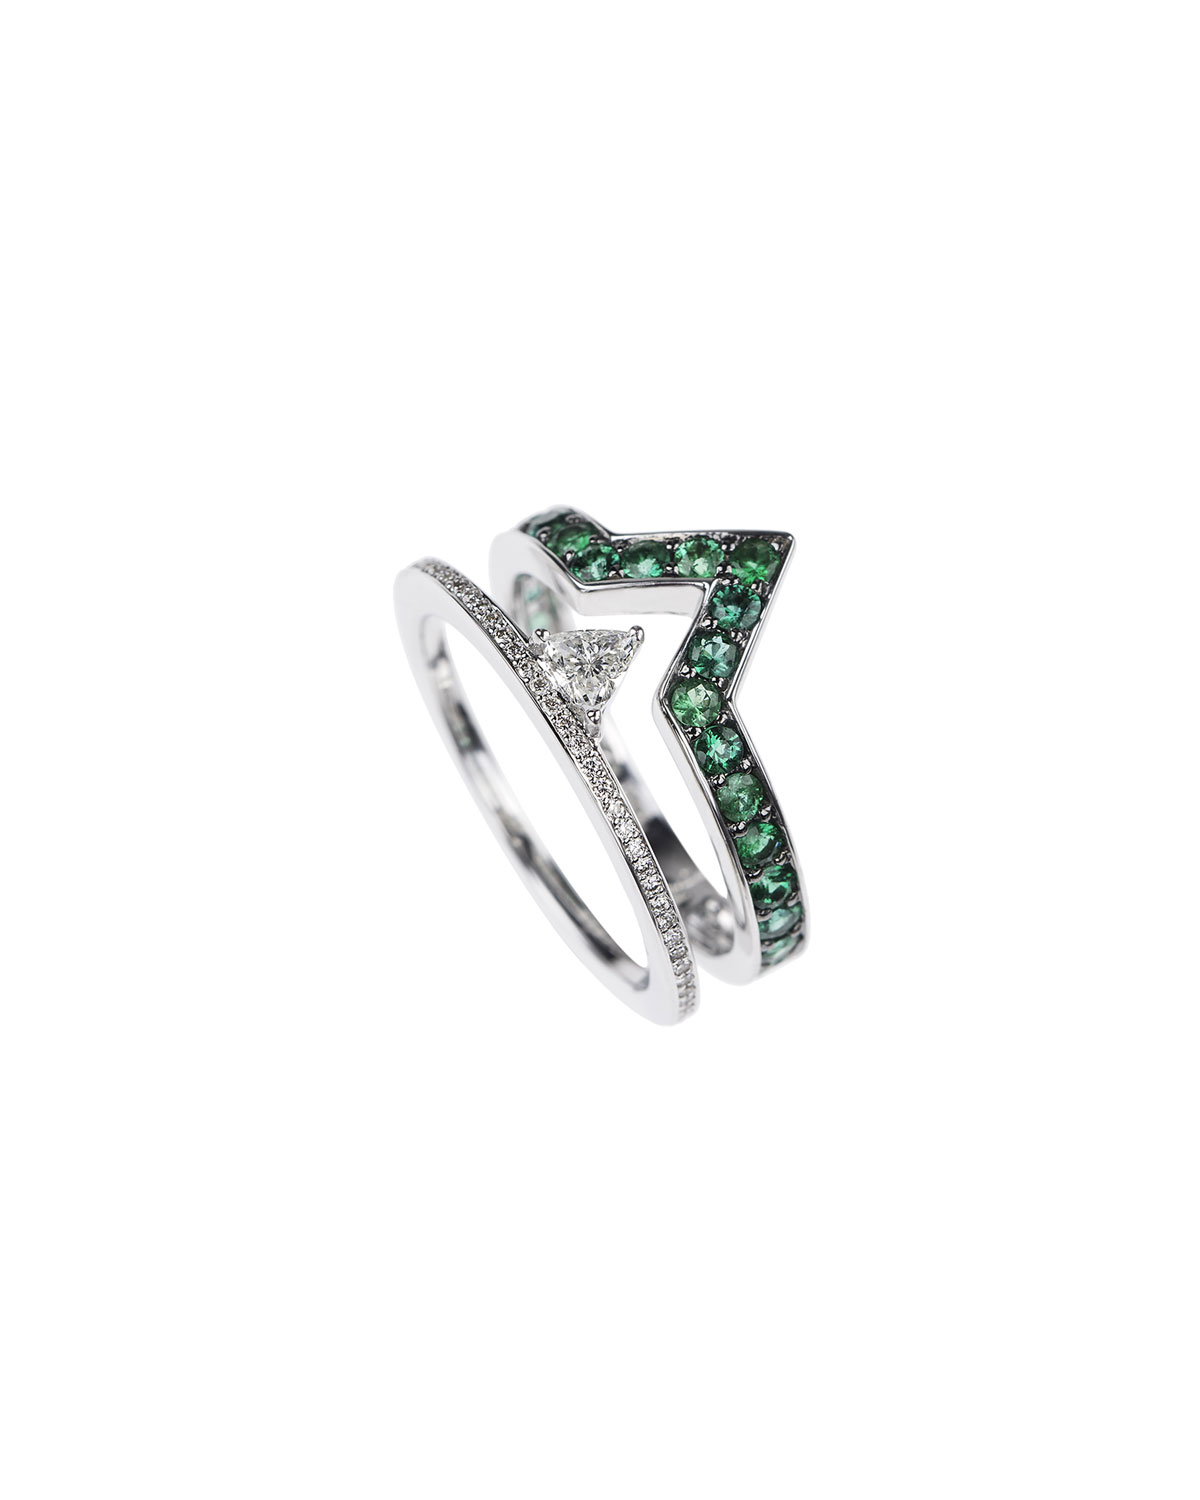 Nikos Koulis V 18k White Gold Diamond & Emerald Ring